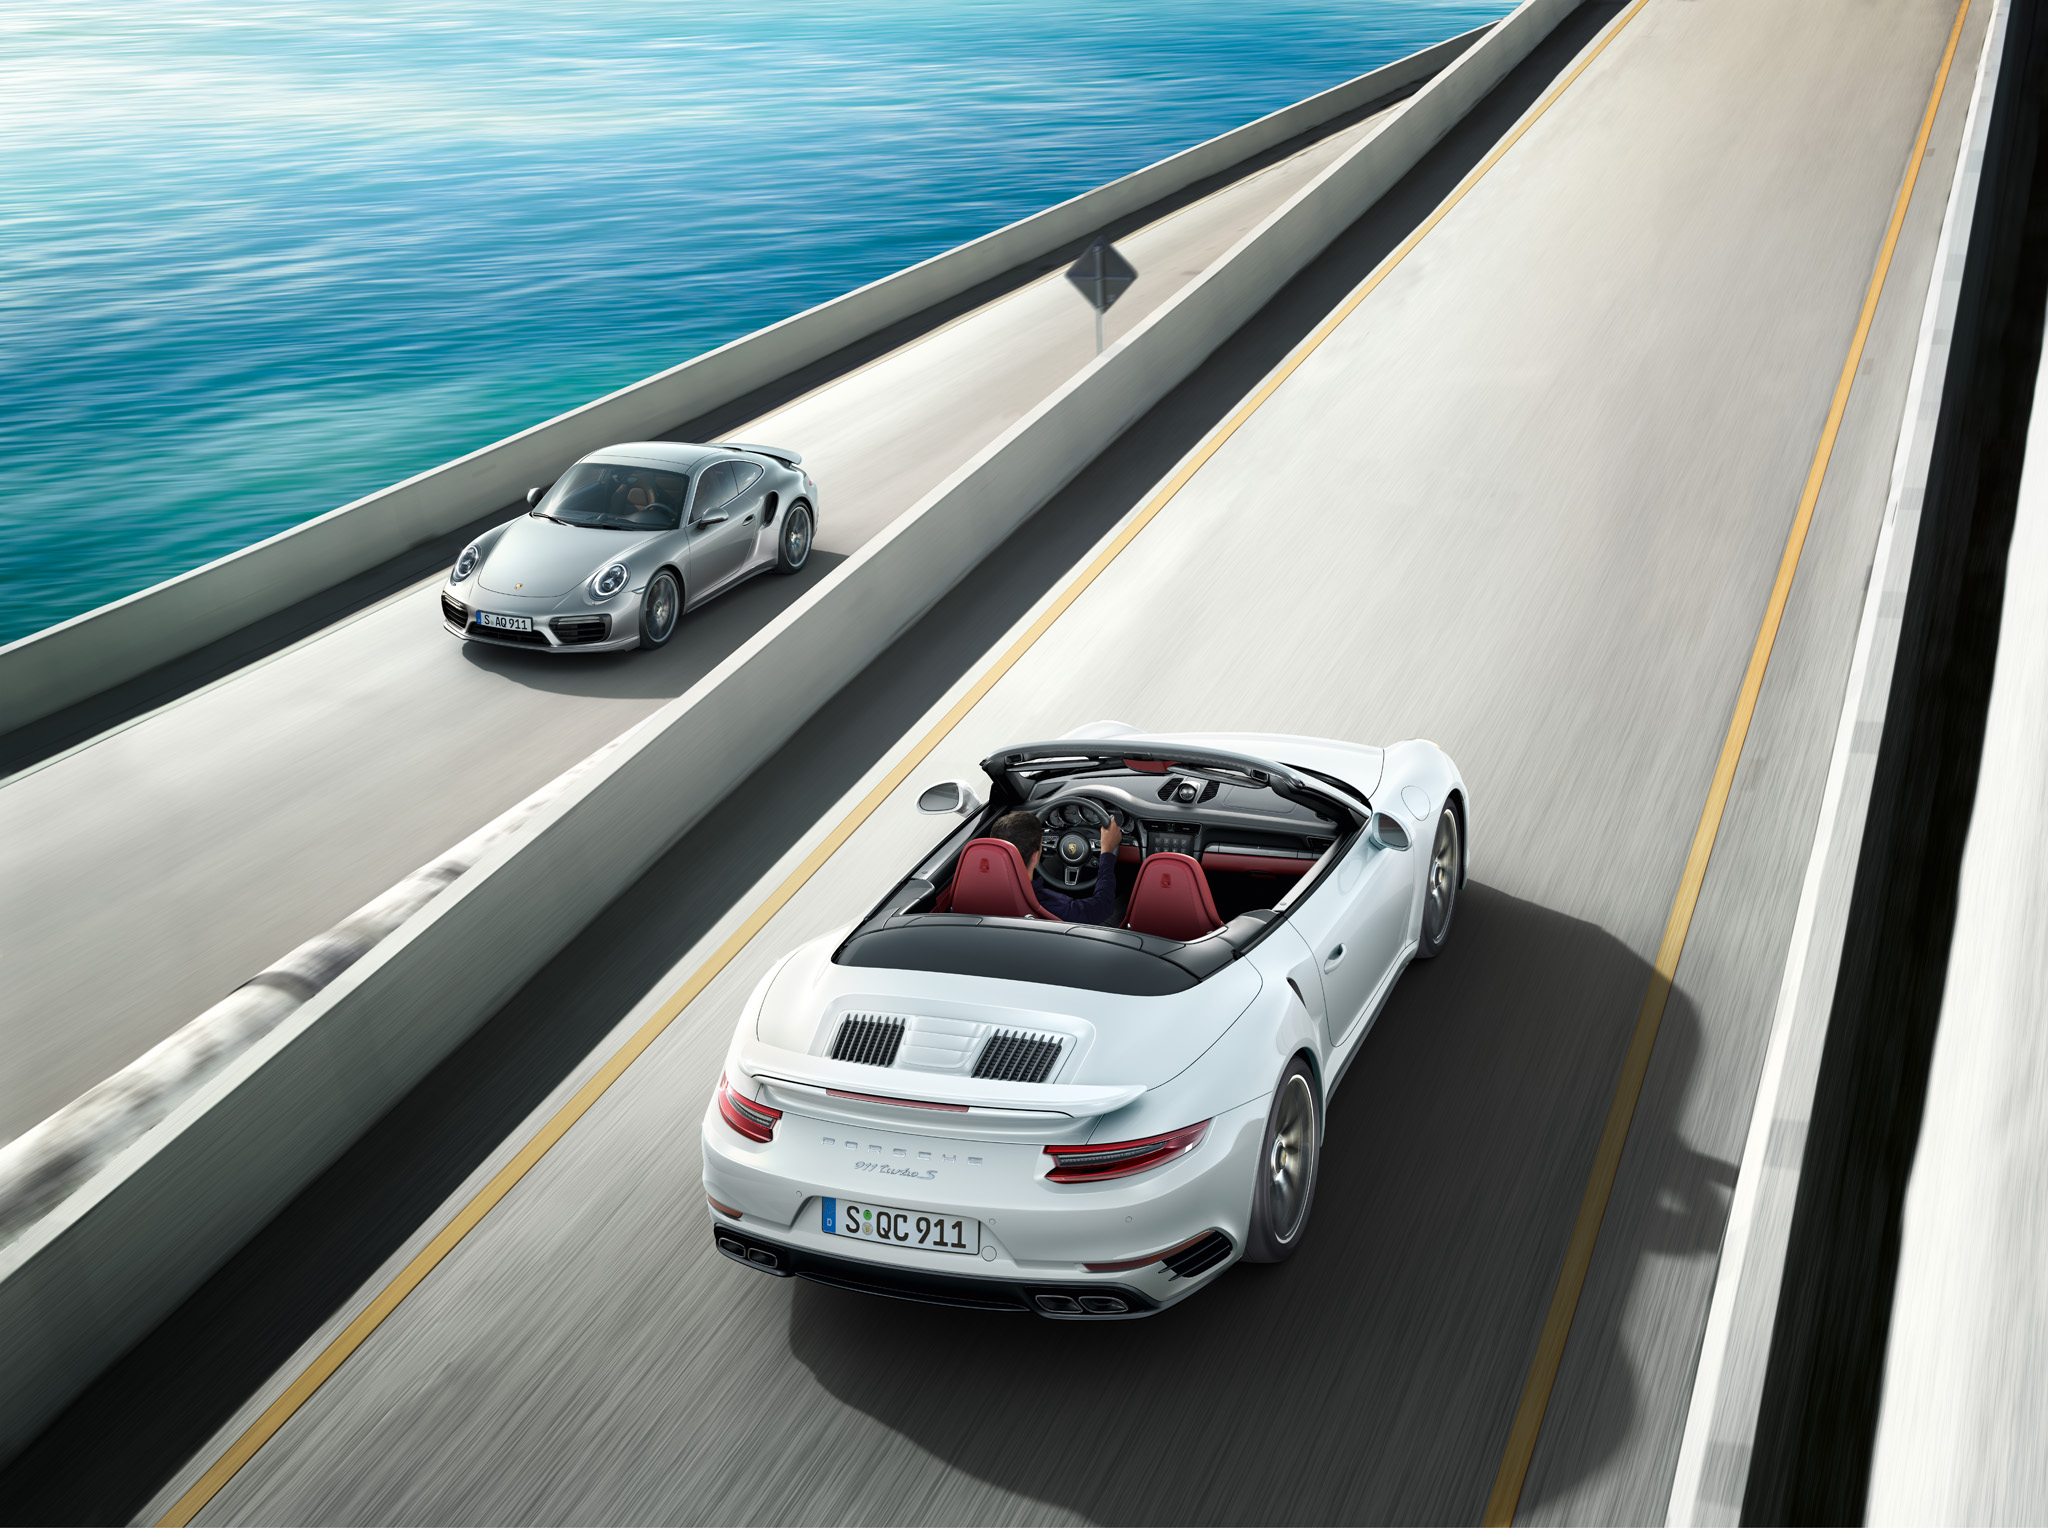 The new Porsche 911 Turbo